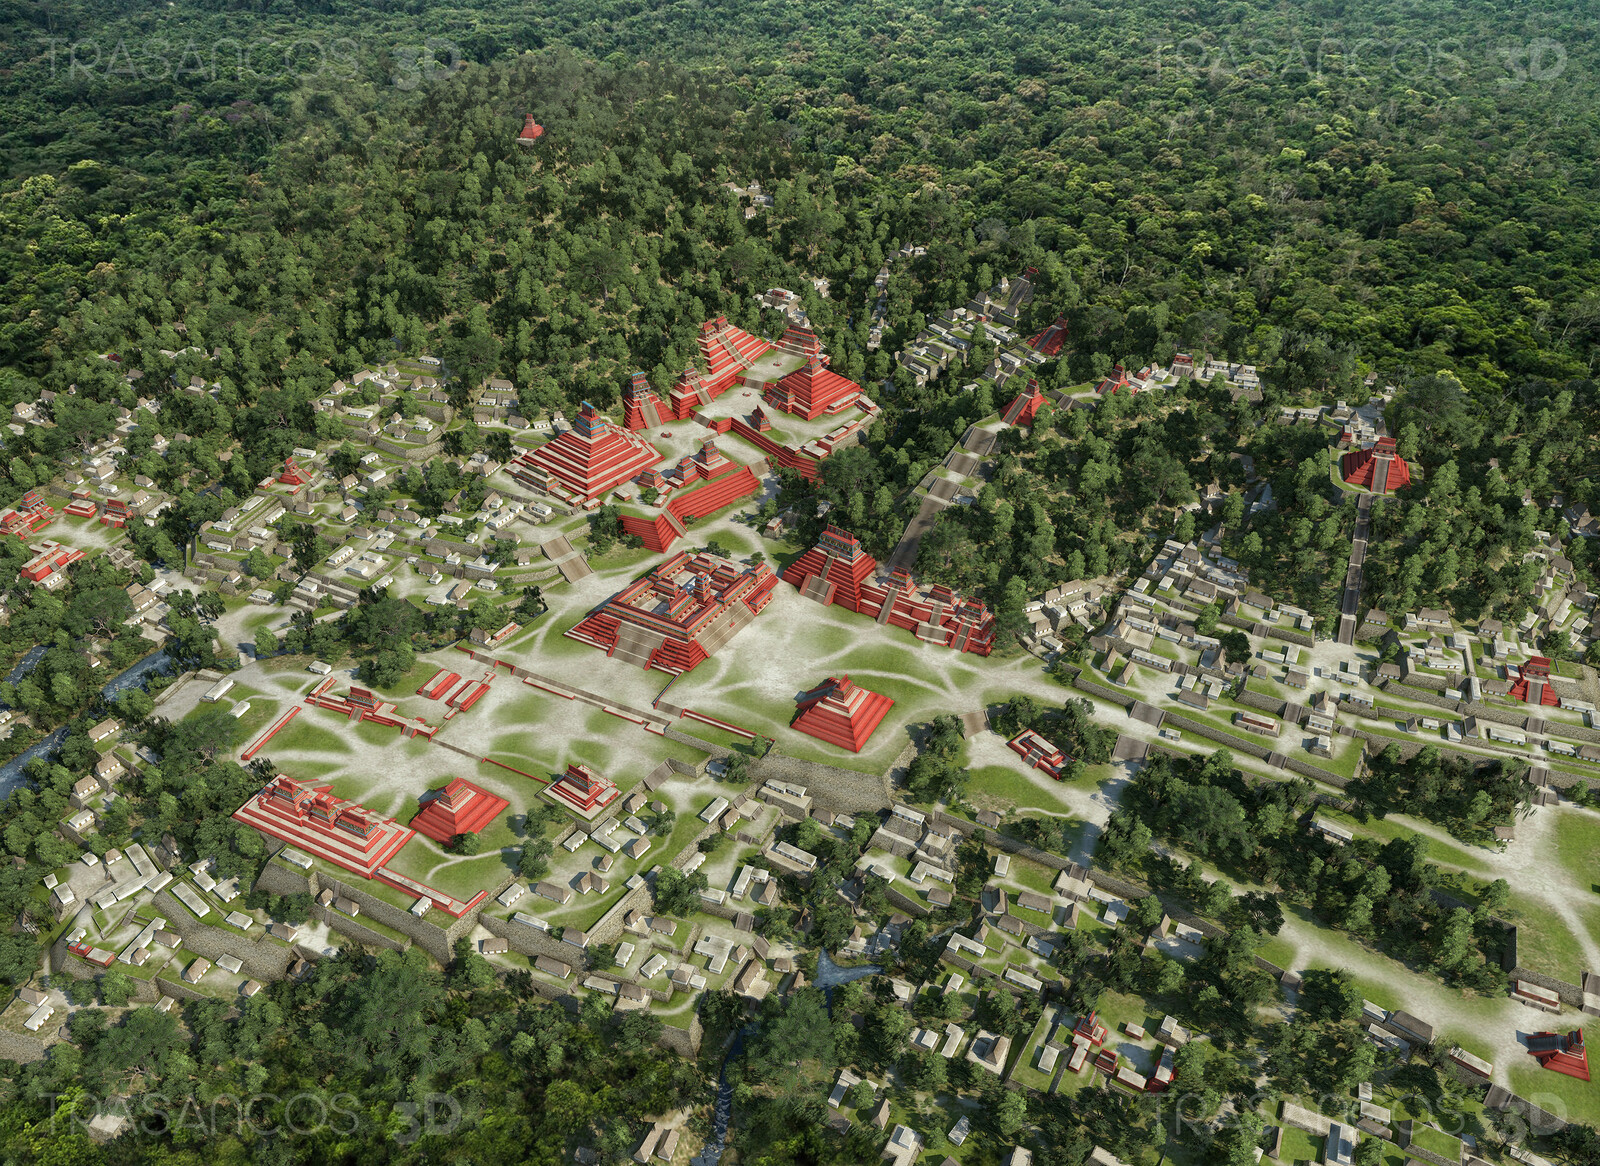 General view of the city of Palenque reconstructed. Modeled in collaboration with: - Andrés Armesto - Alejandro Soriano - Carlos Paz - Diego Blanco